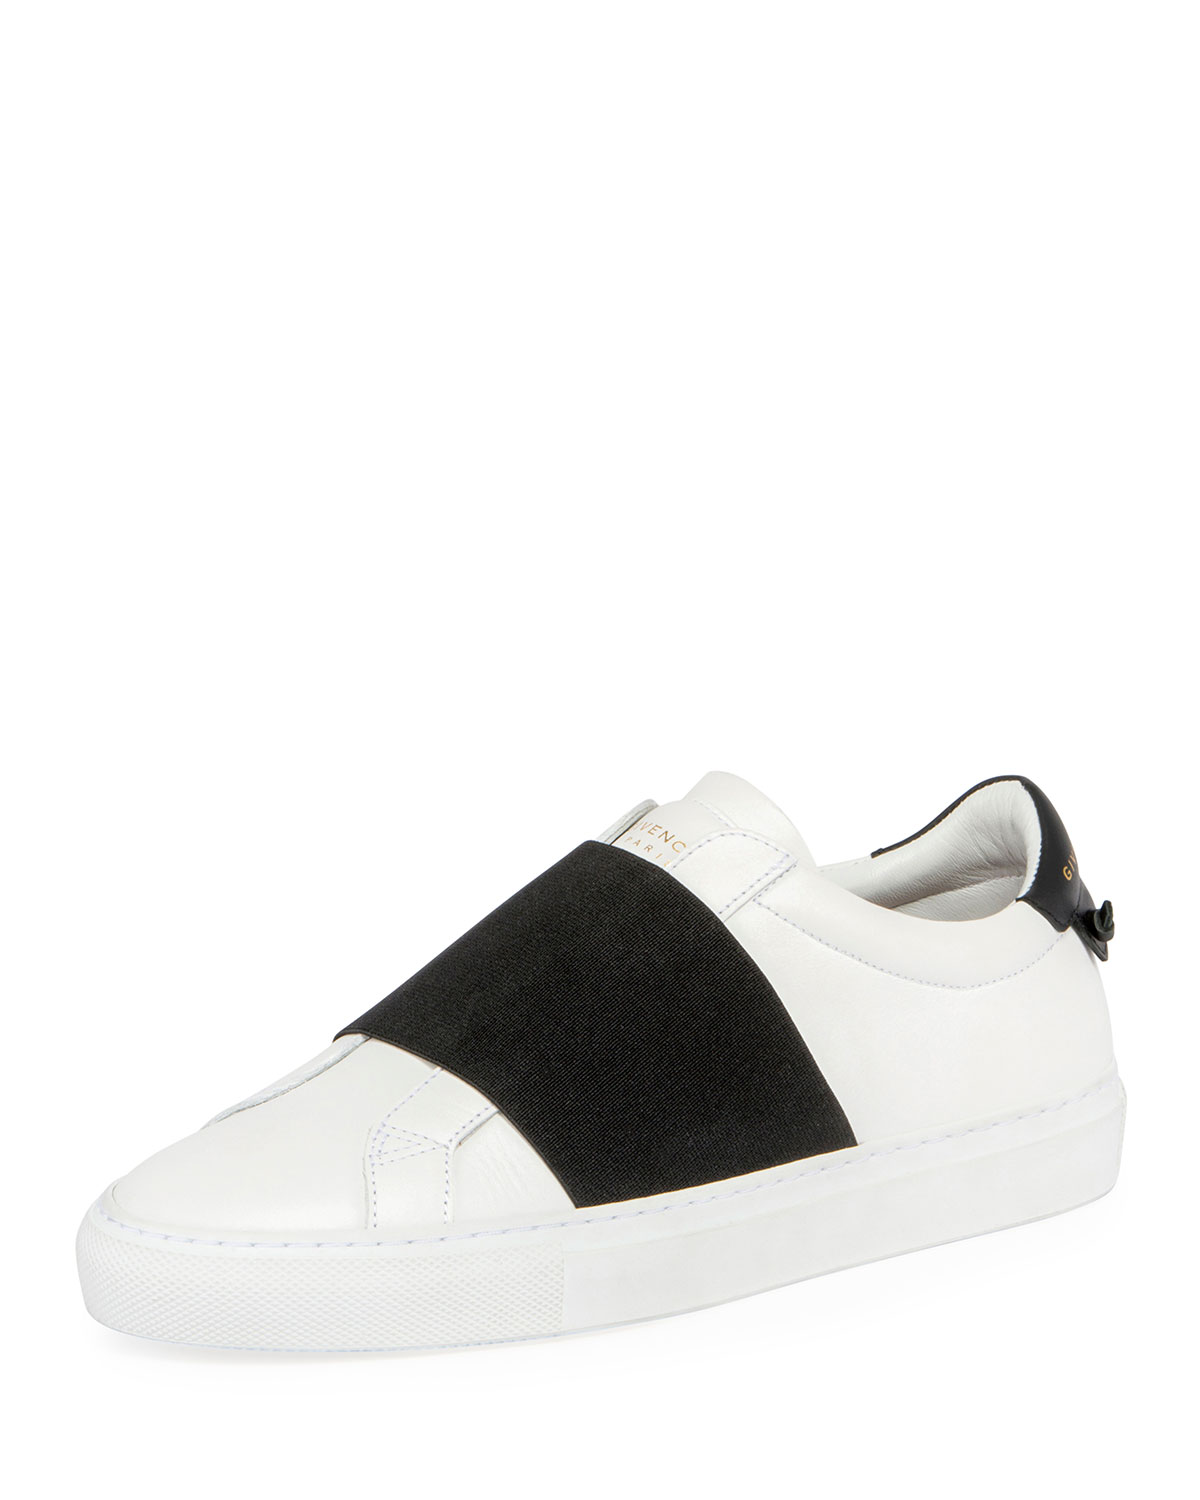 3d52fc6795a Givenchy Urban Knots Elastic Slip-On Sneaker